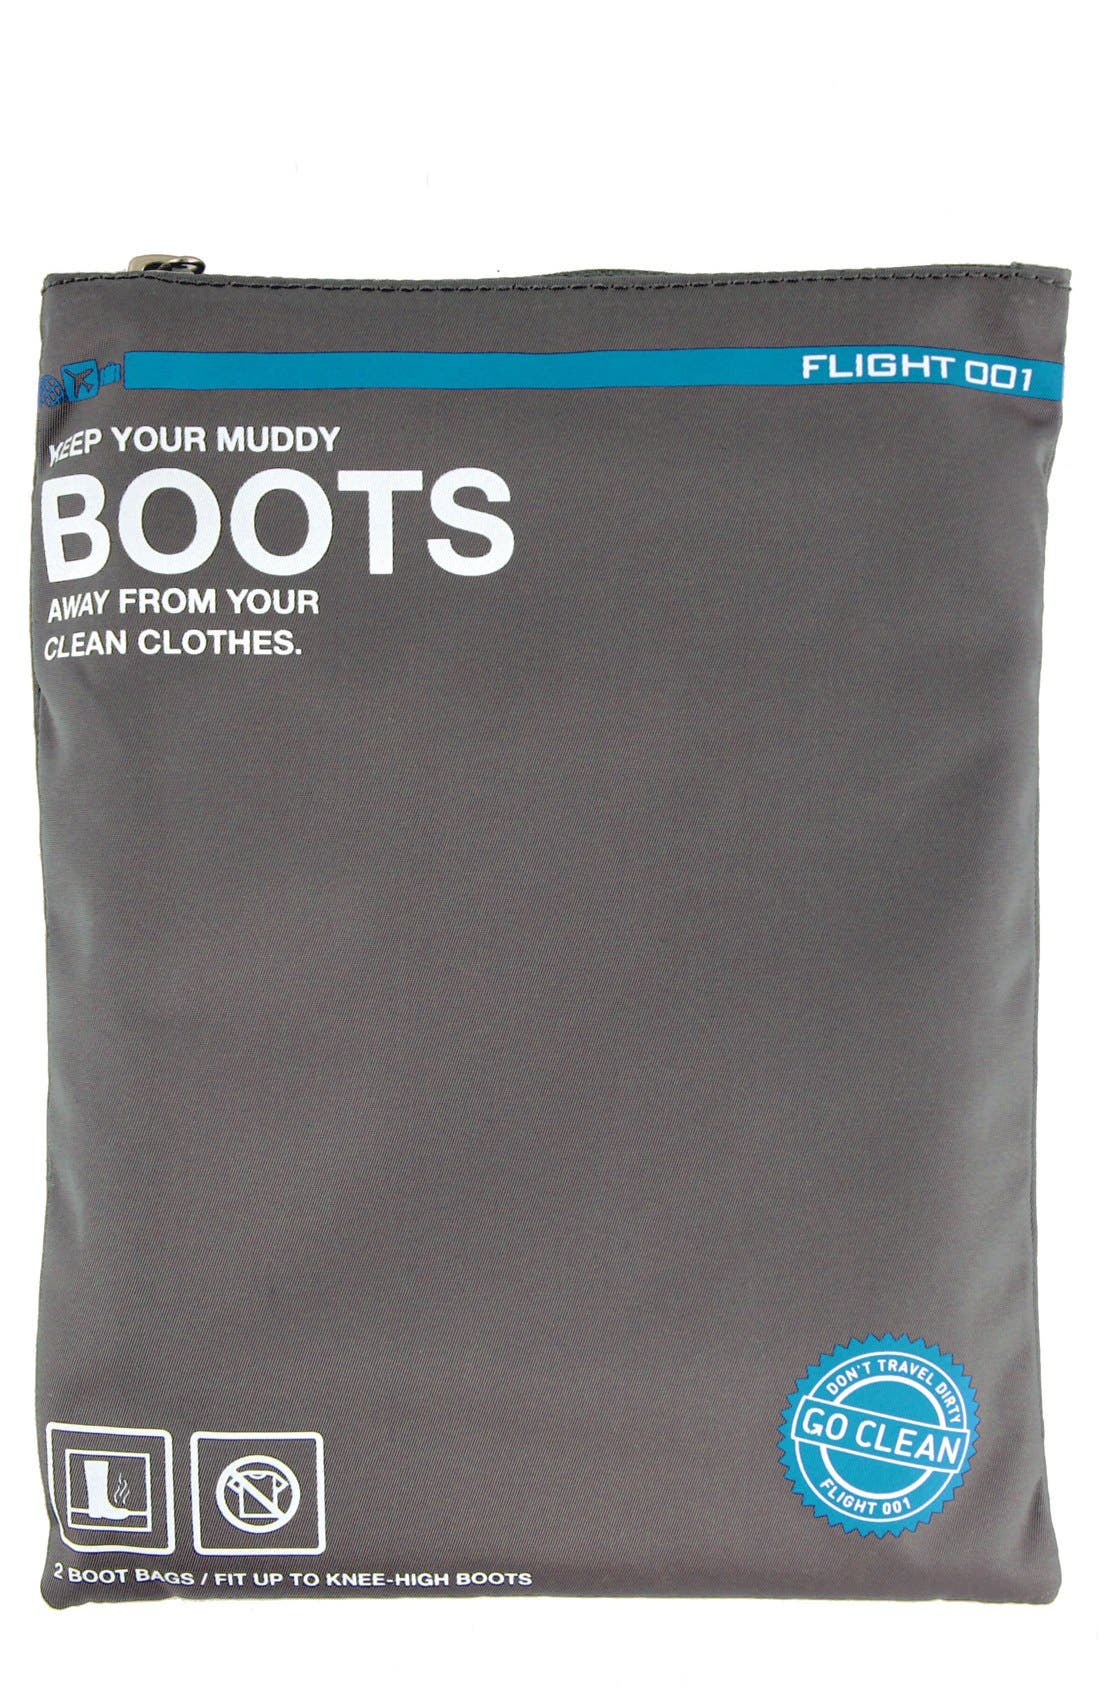 Alternate Image 1 Selected - Flight 001 'Go Clean' Boot Travel Bags